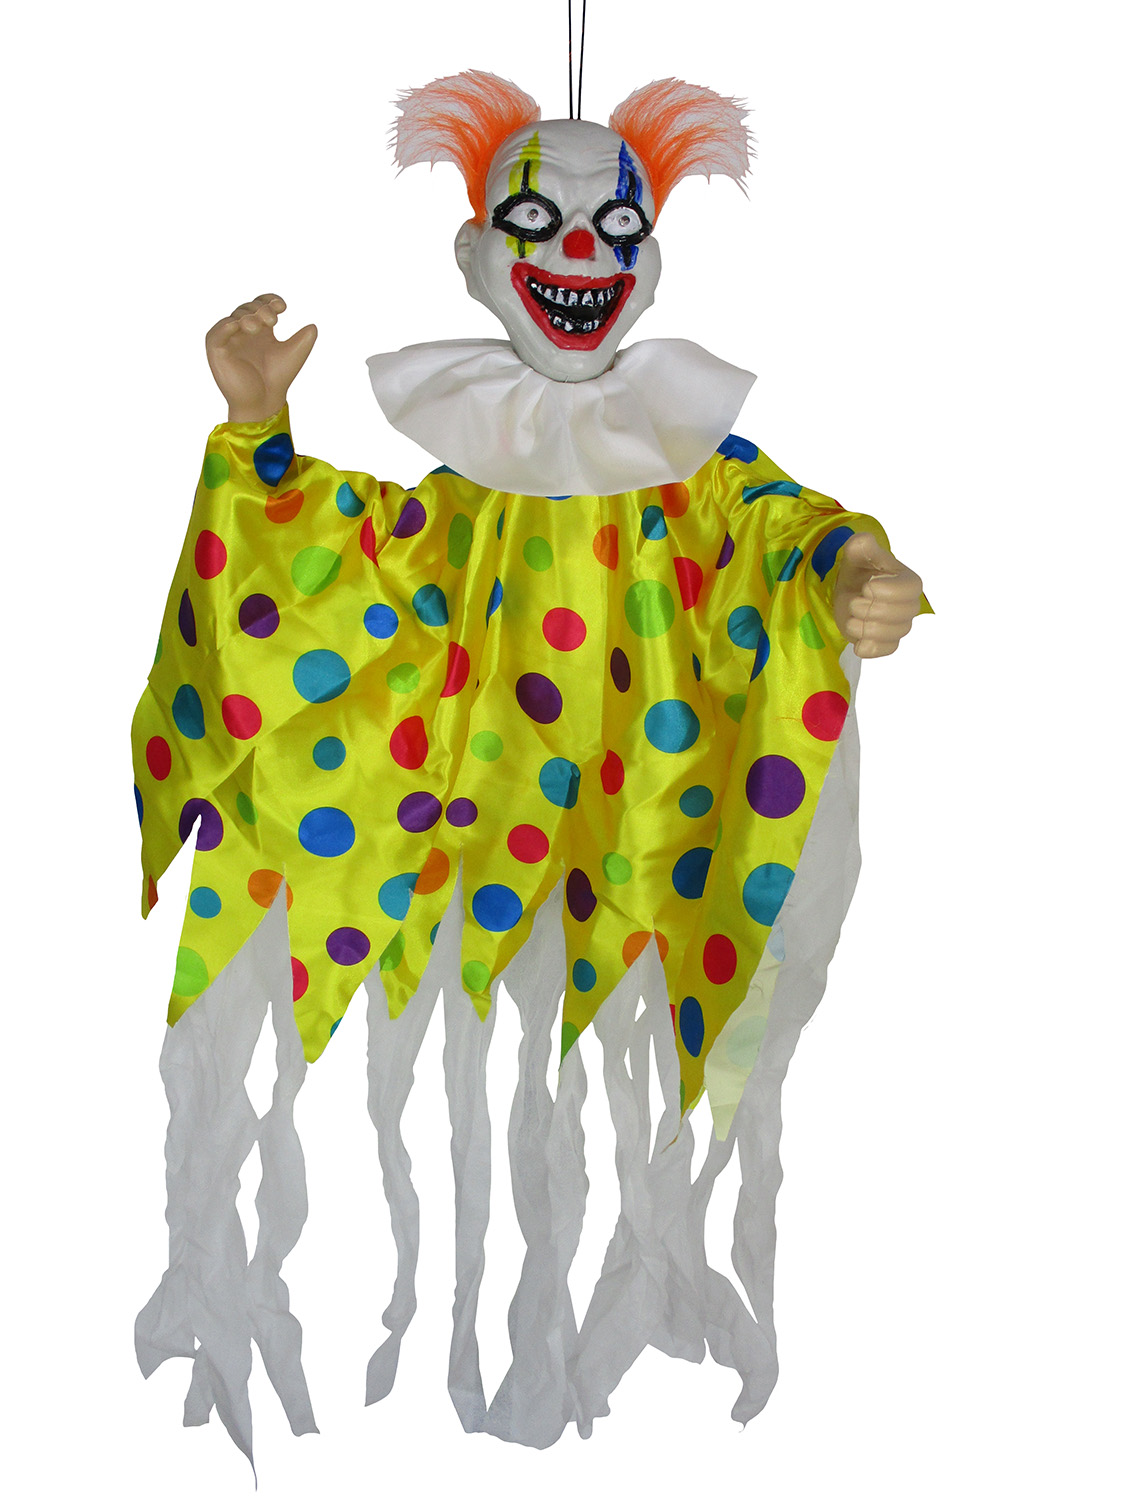 Animated Scary Clown Creepy Halloween Light Up Hanging Decor Haunted House Prop Walmart